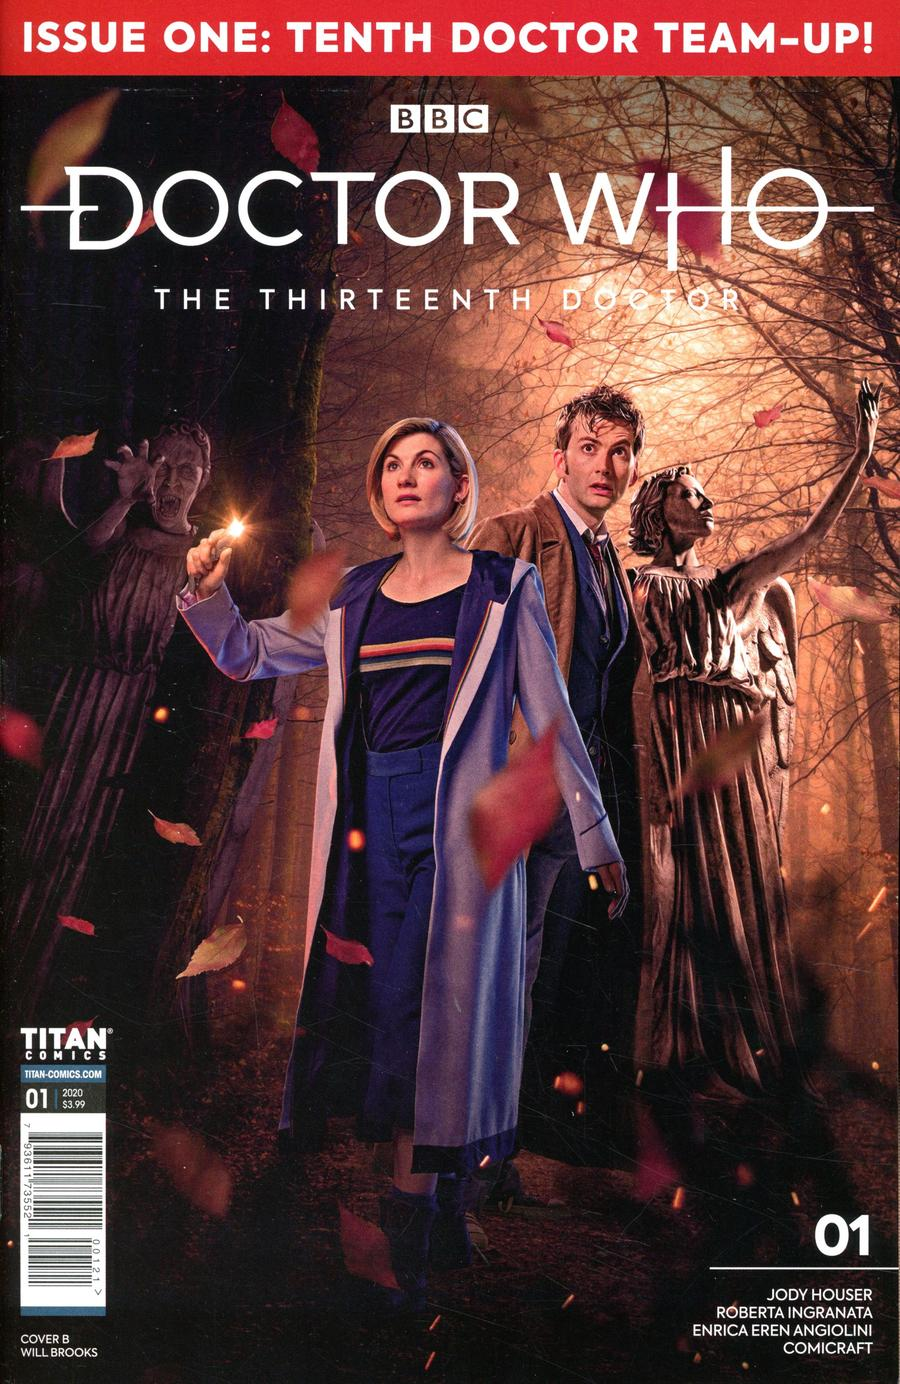 Doctor Who 13th Doctor Season 2 #1 Cover B Variant Photo Cover